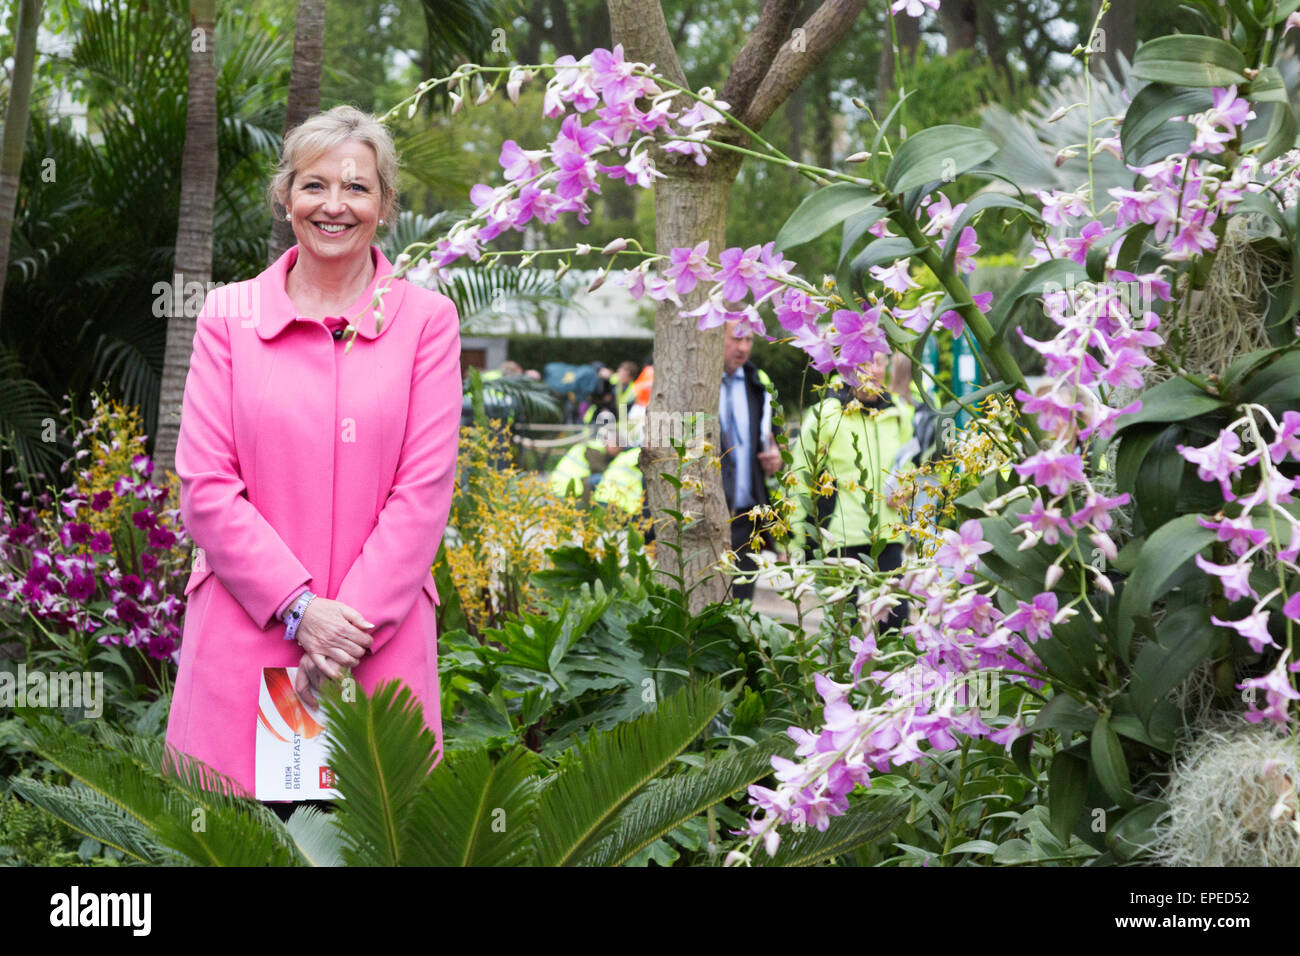 London, UK. 18 May 2015. BBC weather presenter Carol Kirkwood smiles as the first drops of rain land on Chelsea - Stock Image